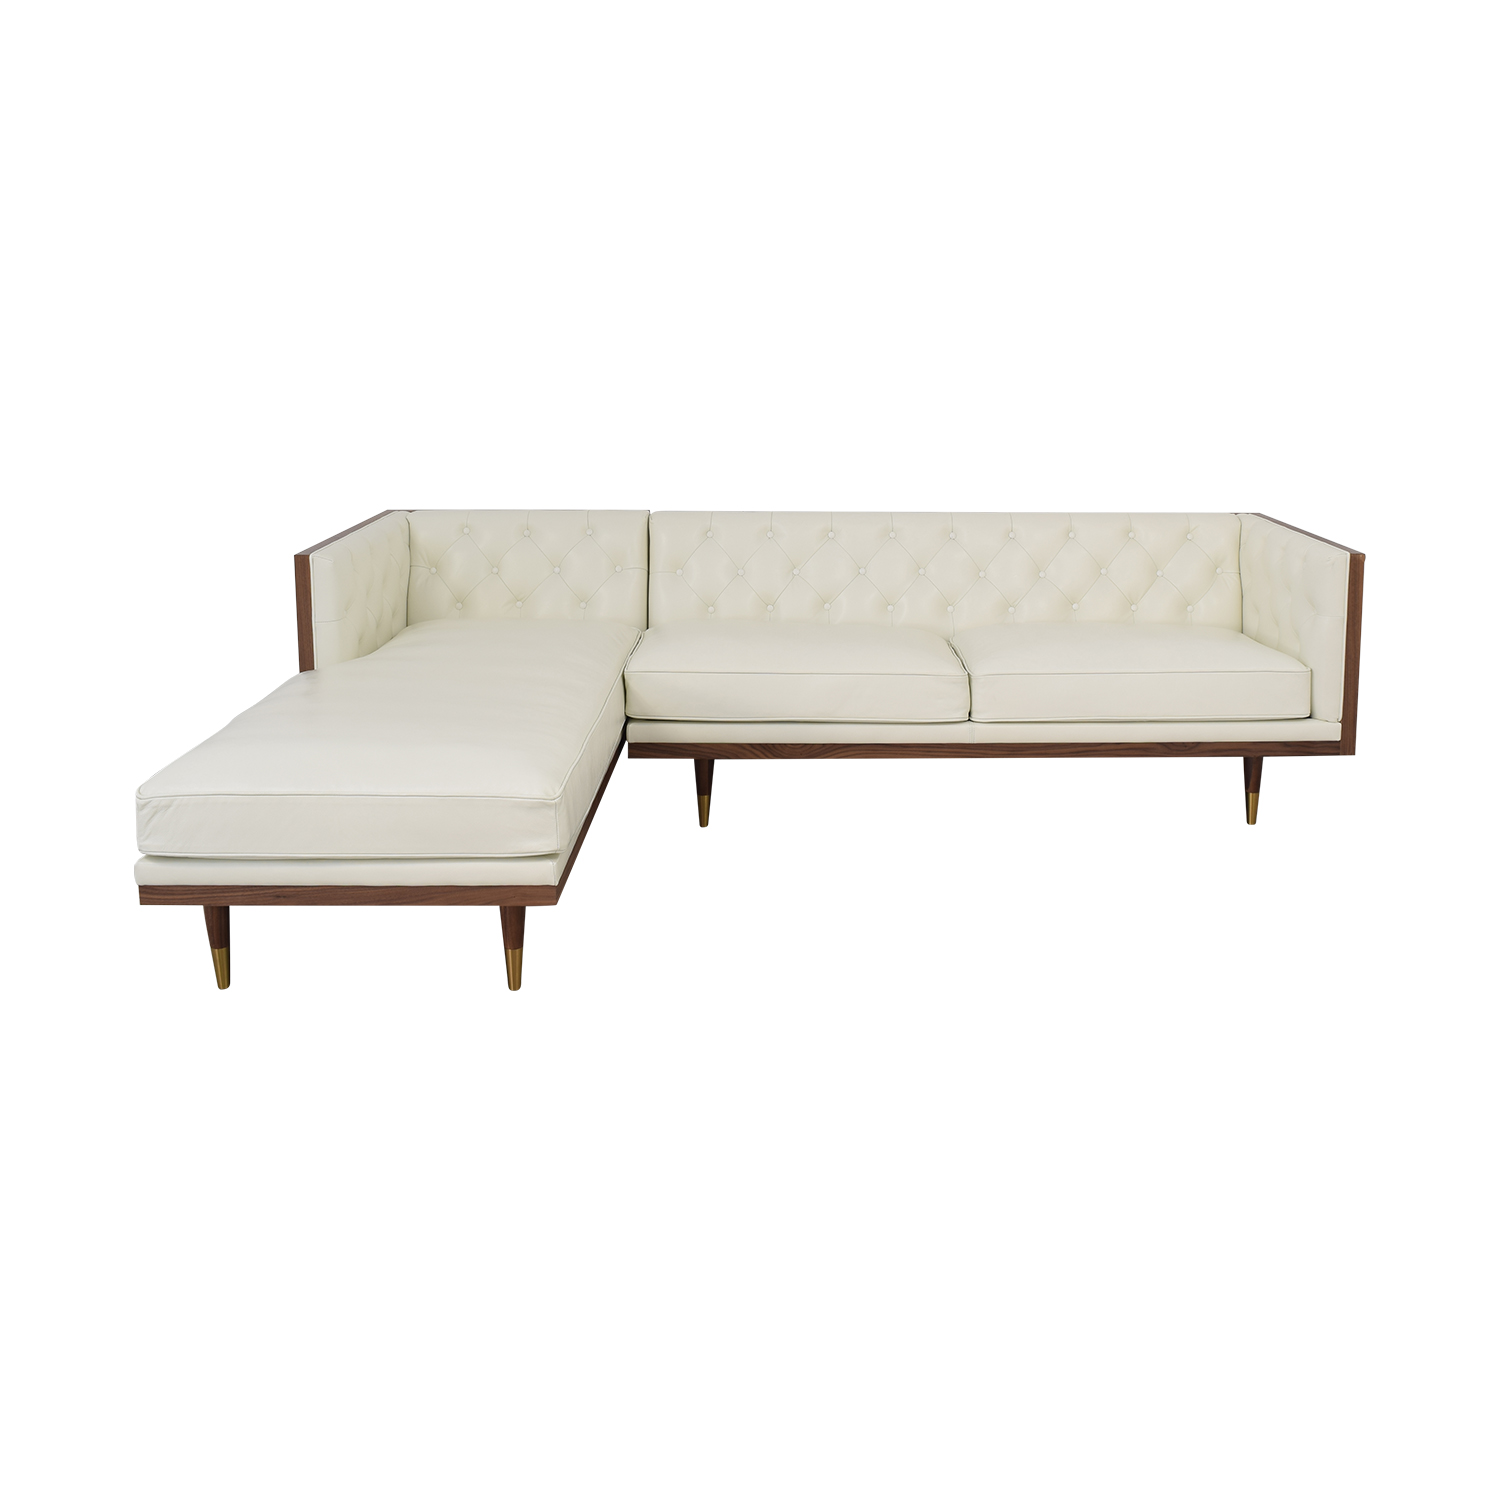 Kardiel Kardiel Woodrow Neo Sectional Sofa with Chaise nyc